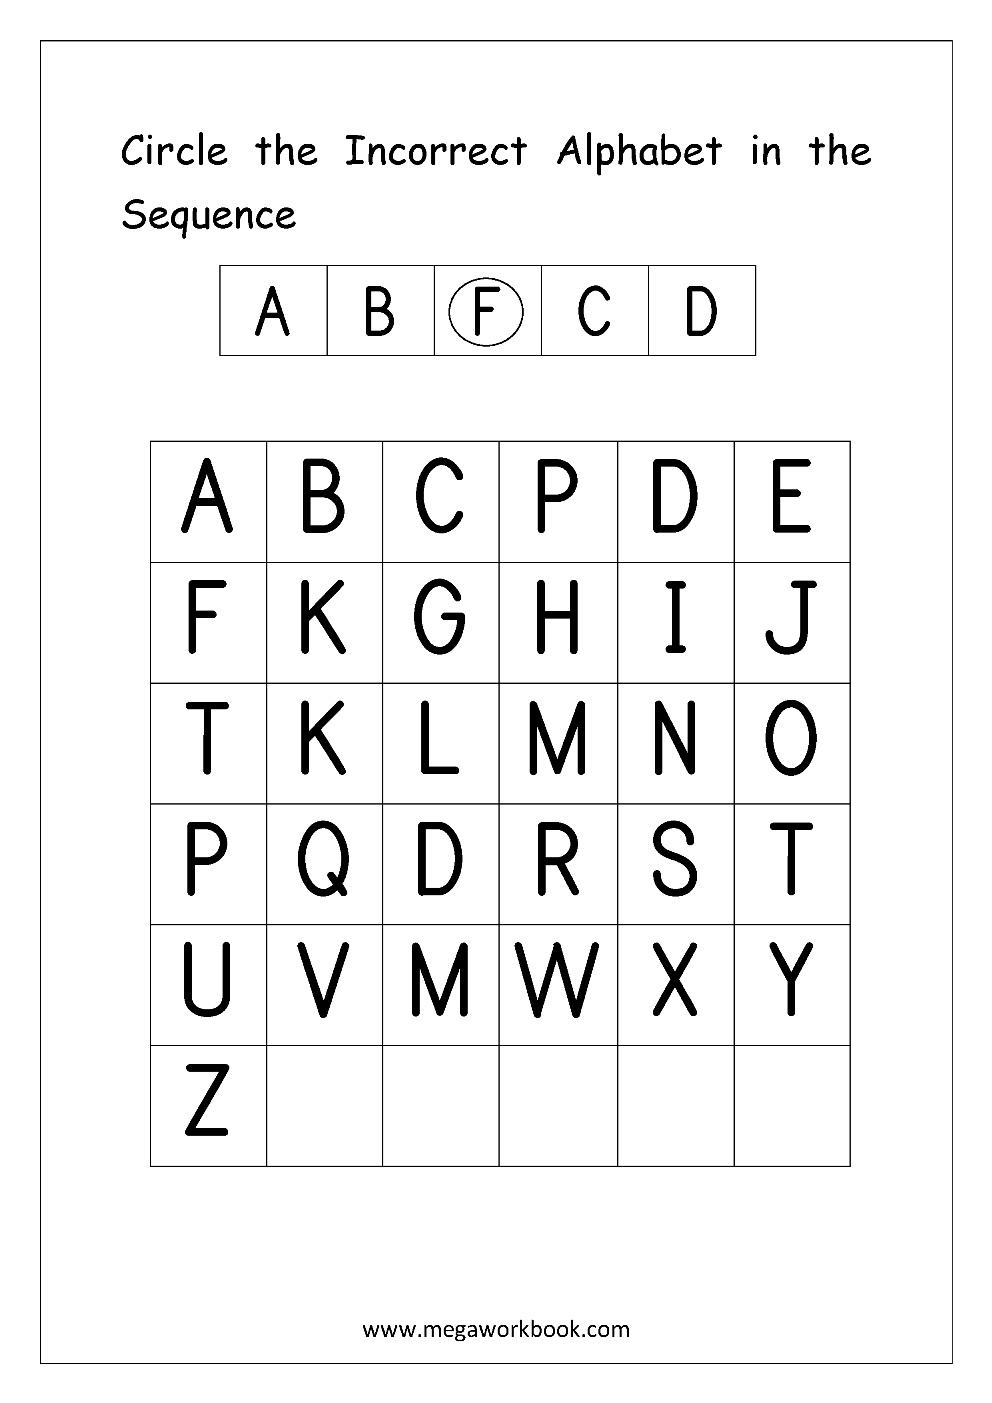 free english worksheets alphabetical sequence alphabetical order missing letters. Black Bedroom Furniture Sets. Home Design Ideas